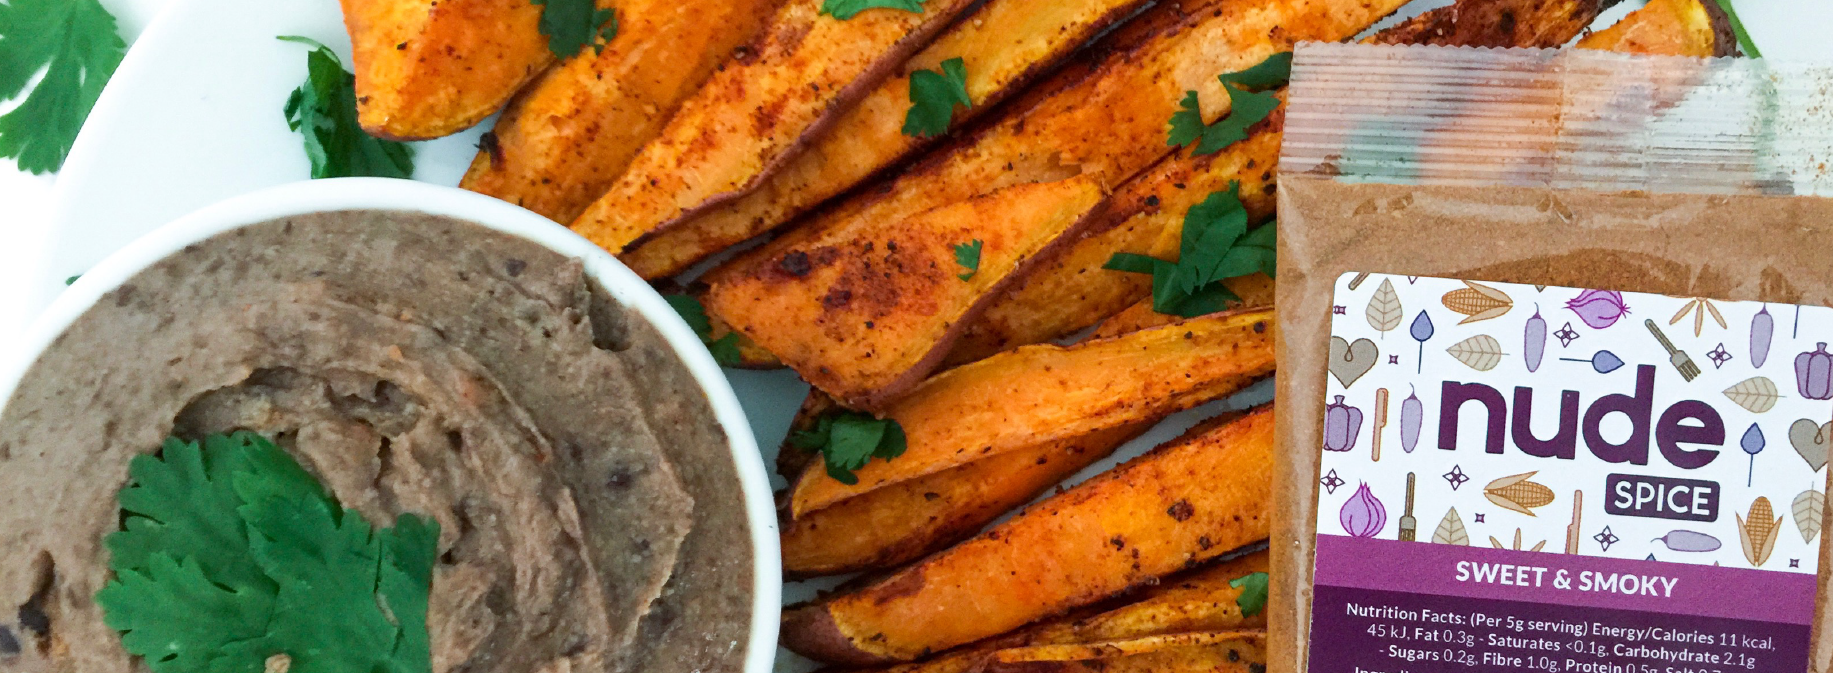 Spicy Black Bean Hummus with Sweet Potato Fries